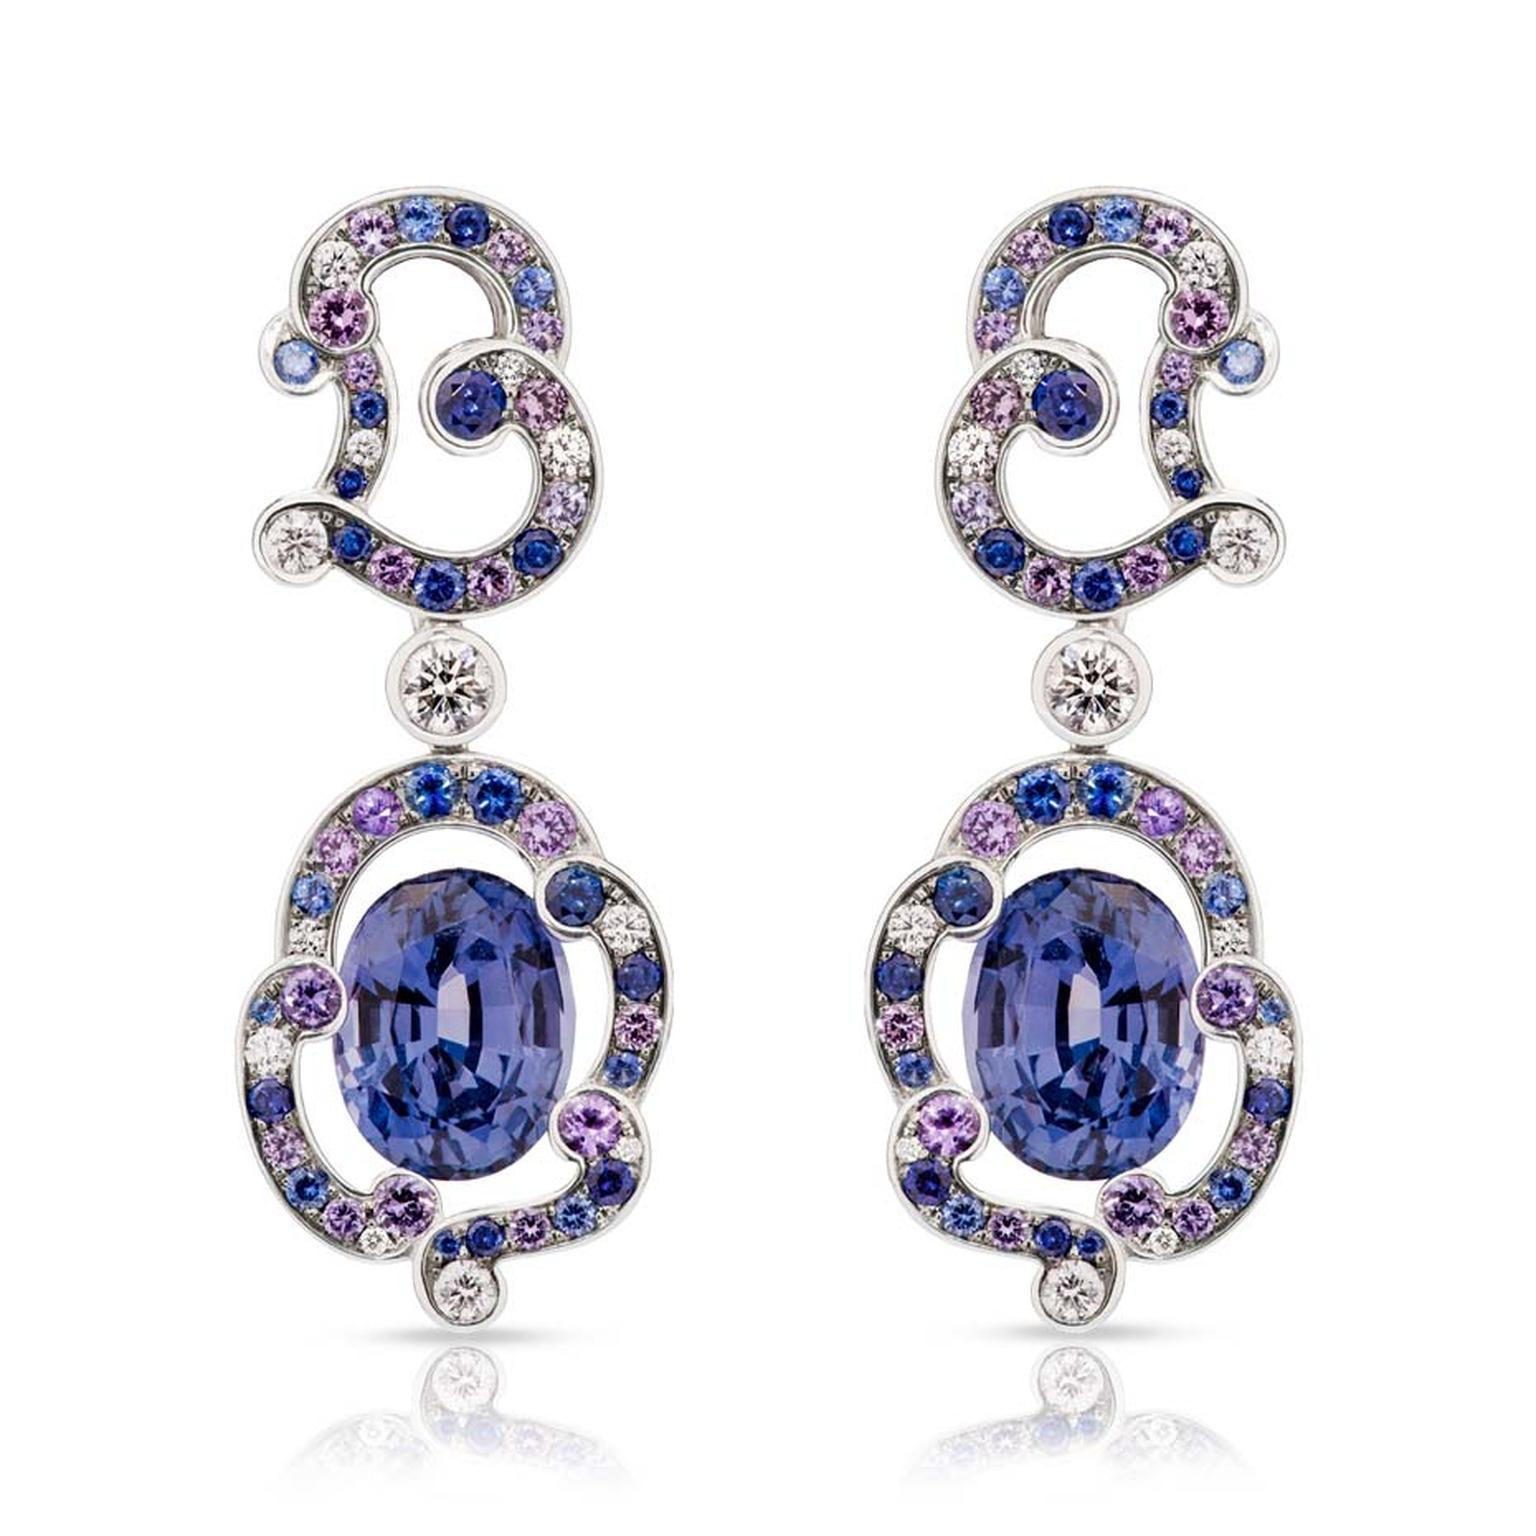 Fabergé Rococo lavender spinel earrings.